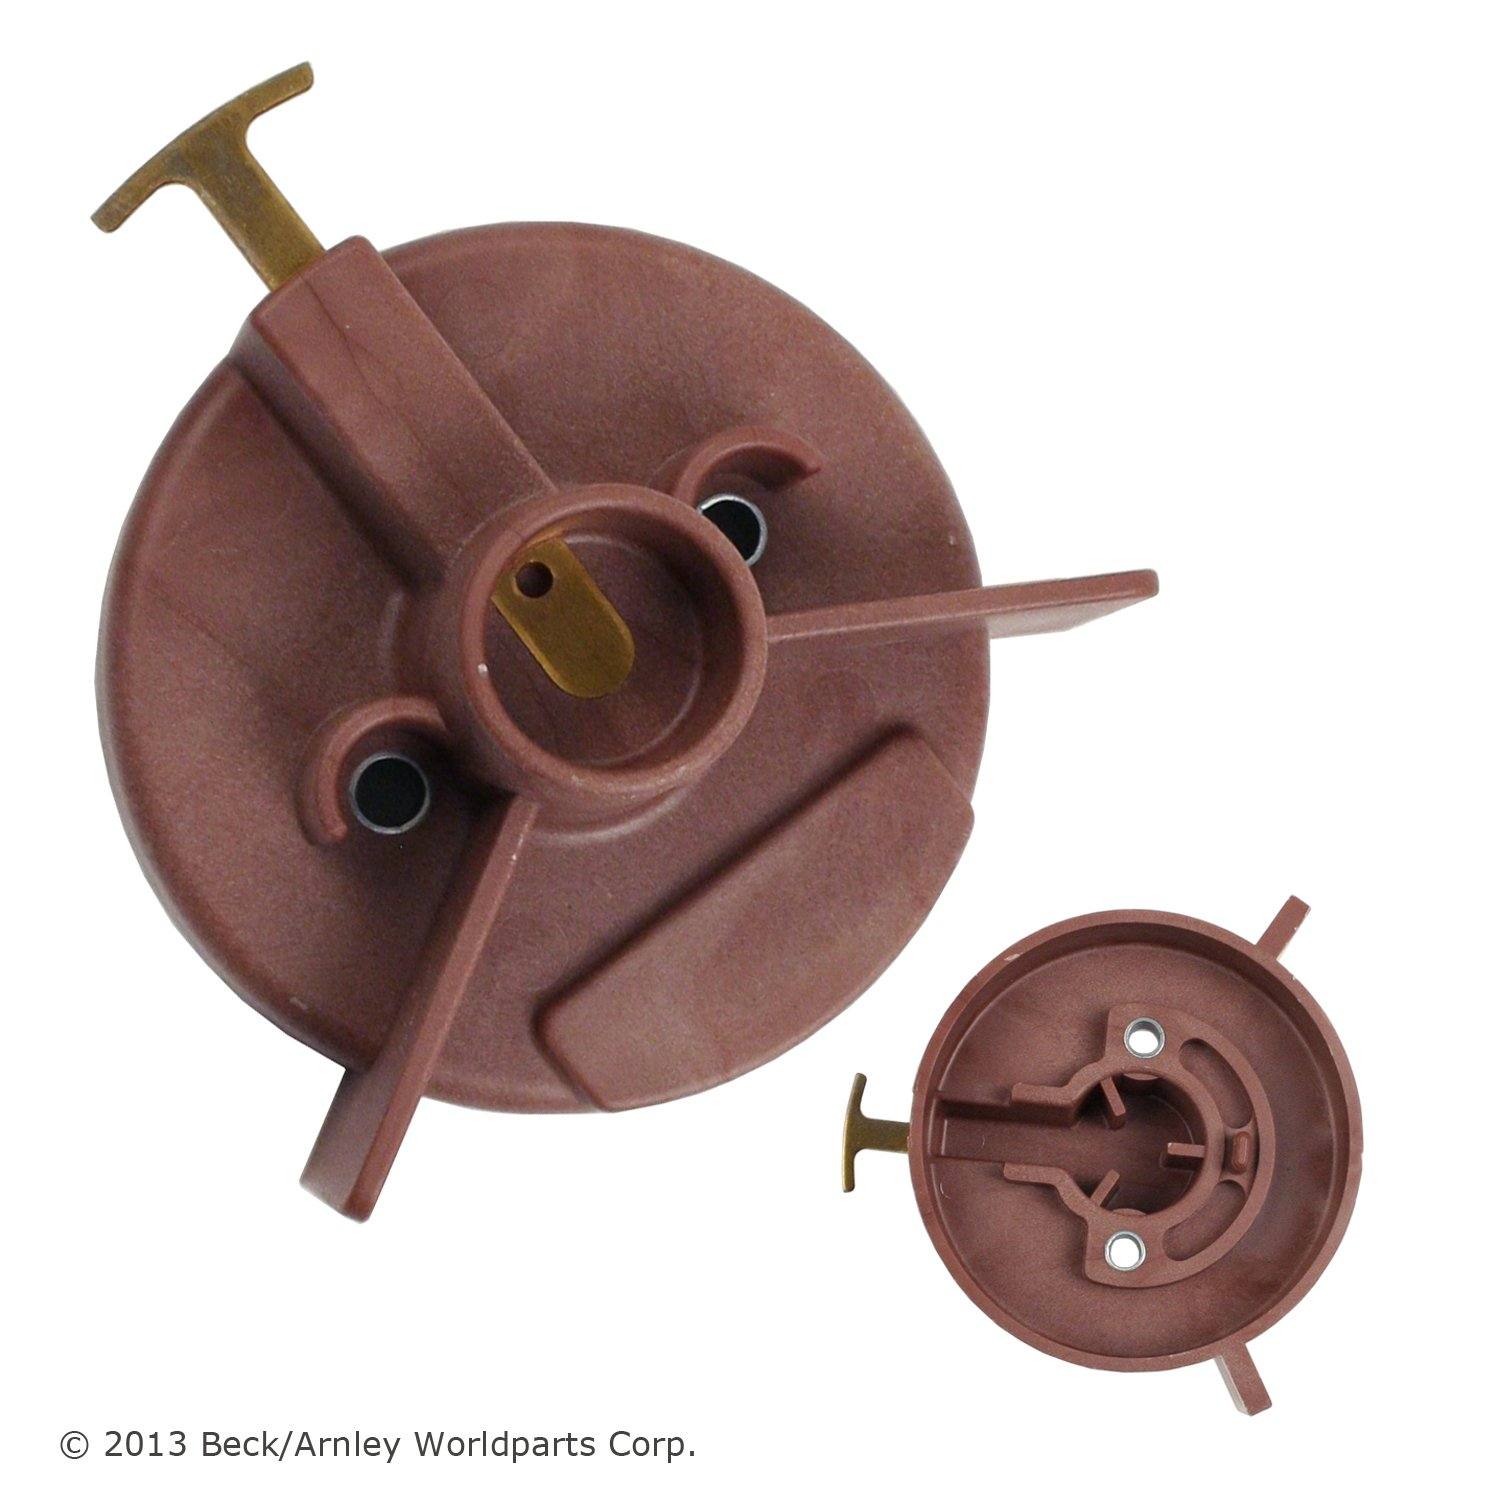 Beck/Arnley 173-7982 Distributor Rotor for 92-93 Lexus ES300, Toyota Camry